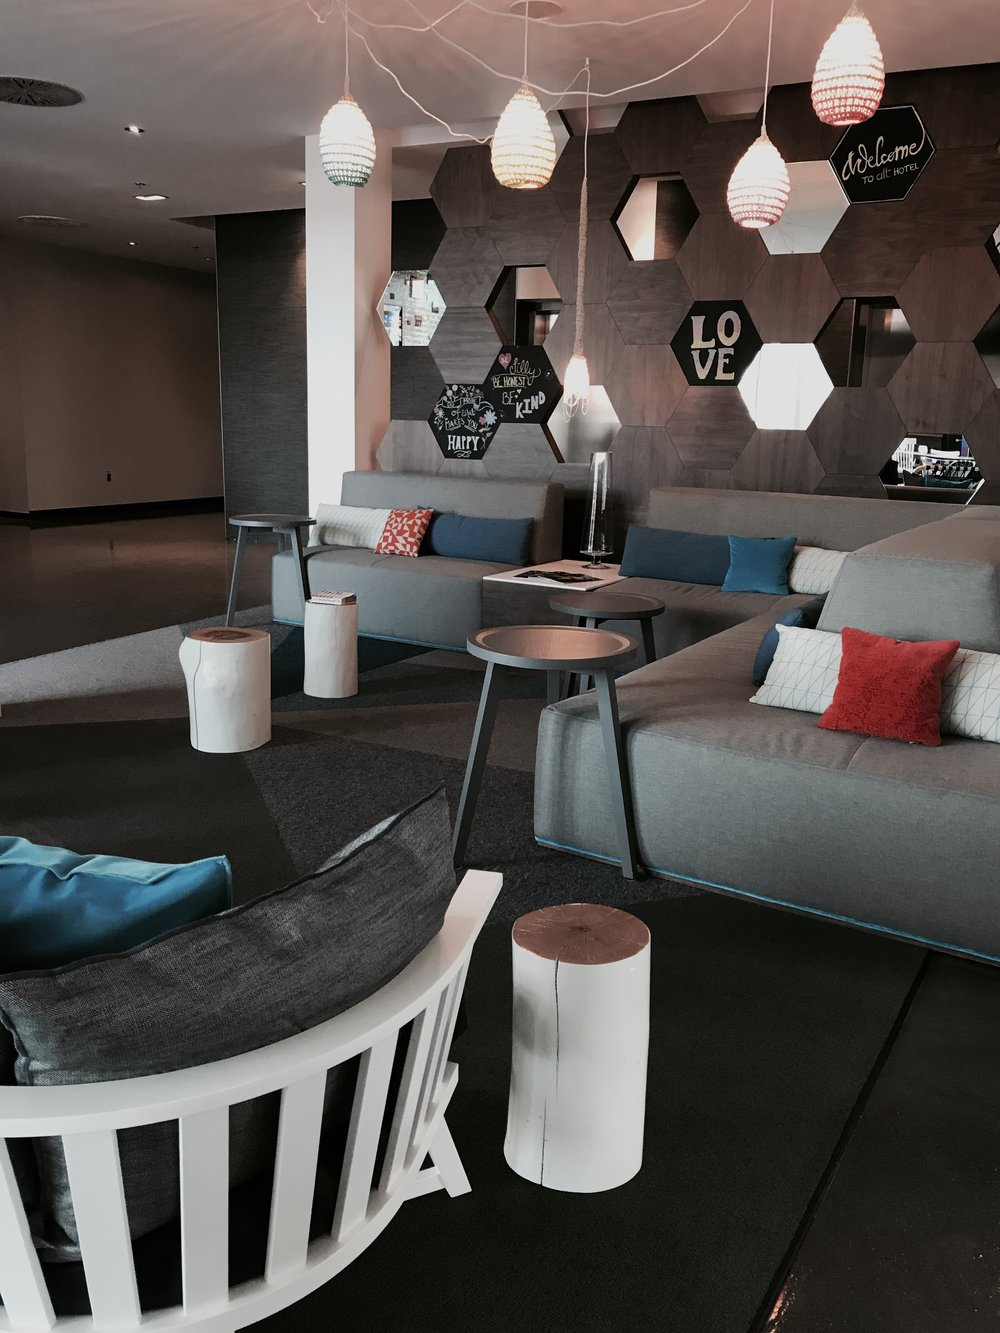 alt hotel st. john's newfoundland where to stay downtown eco friendly modern new